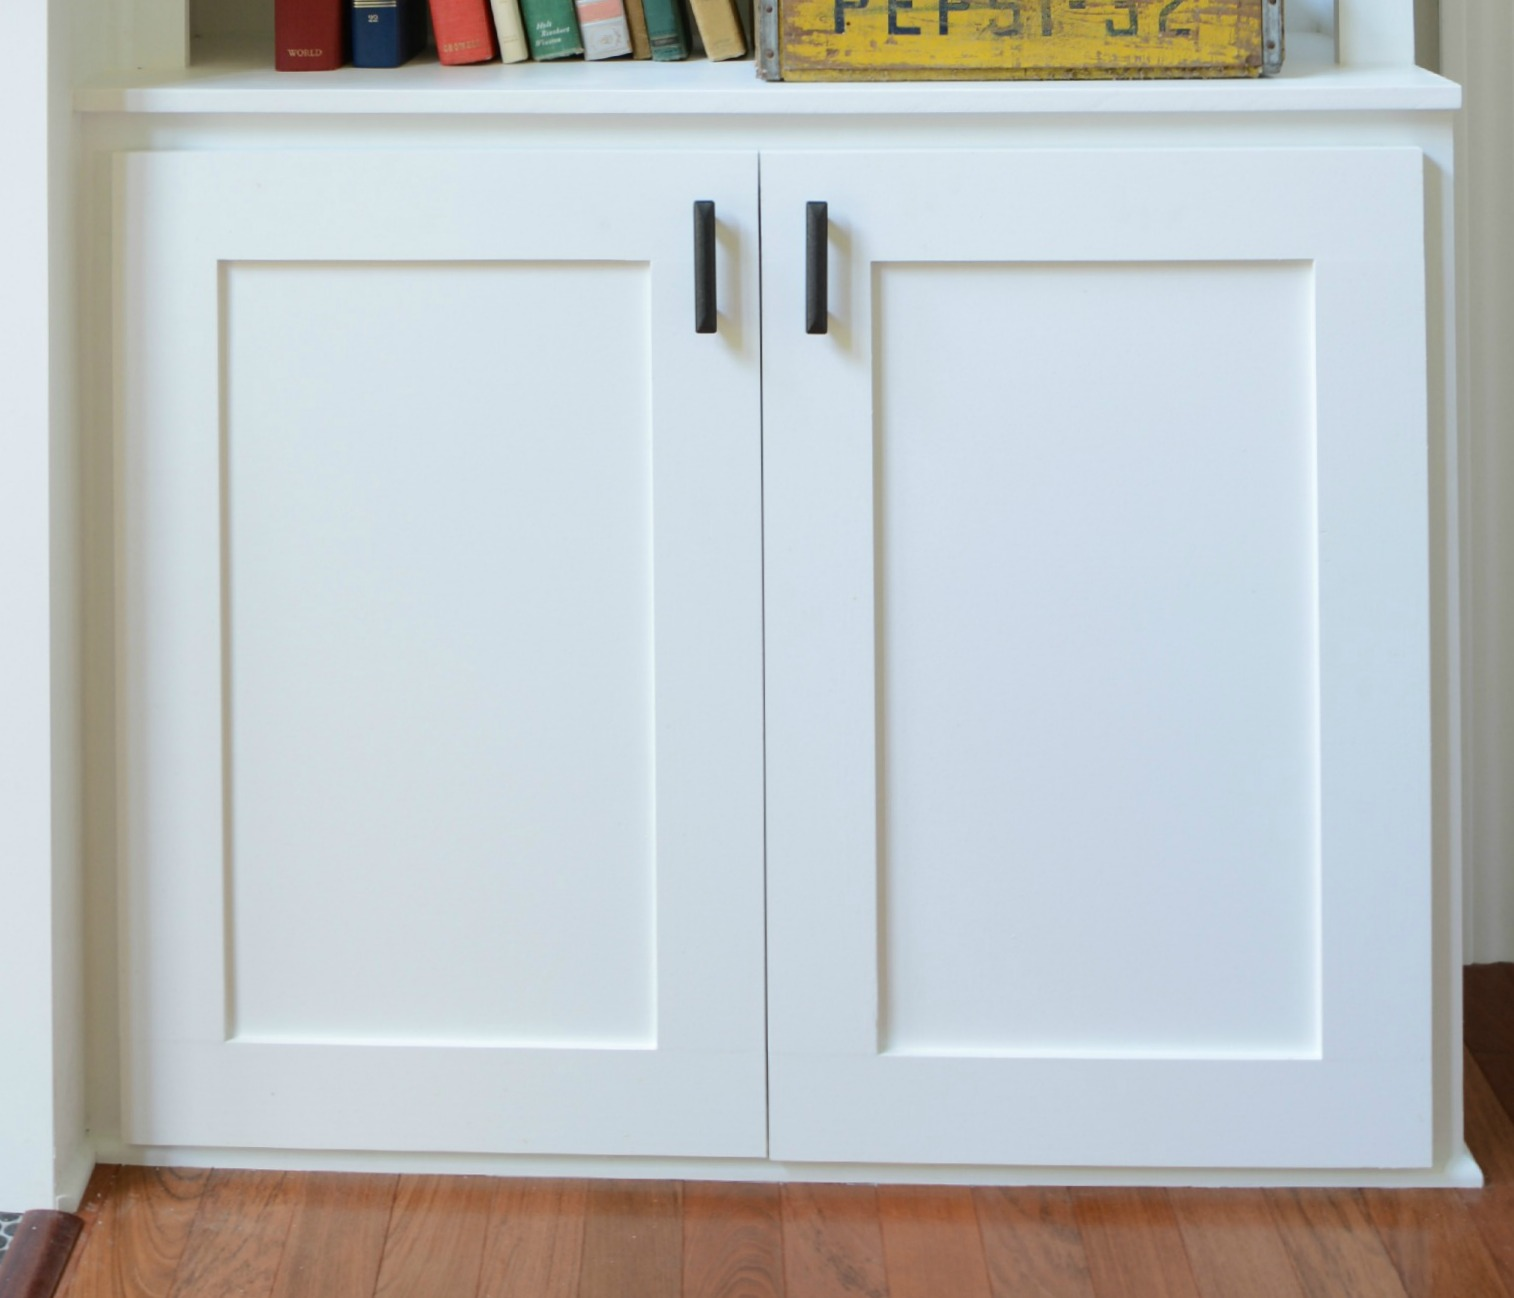 How To Build A Cabinet Door Decor And The Dog